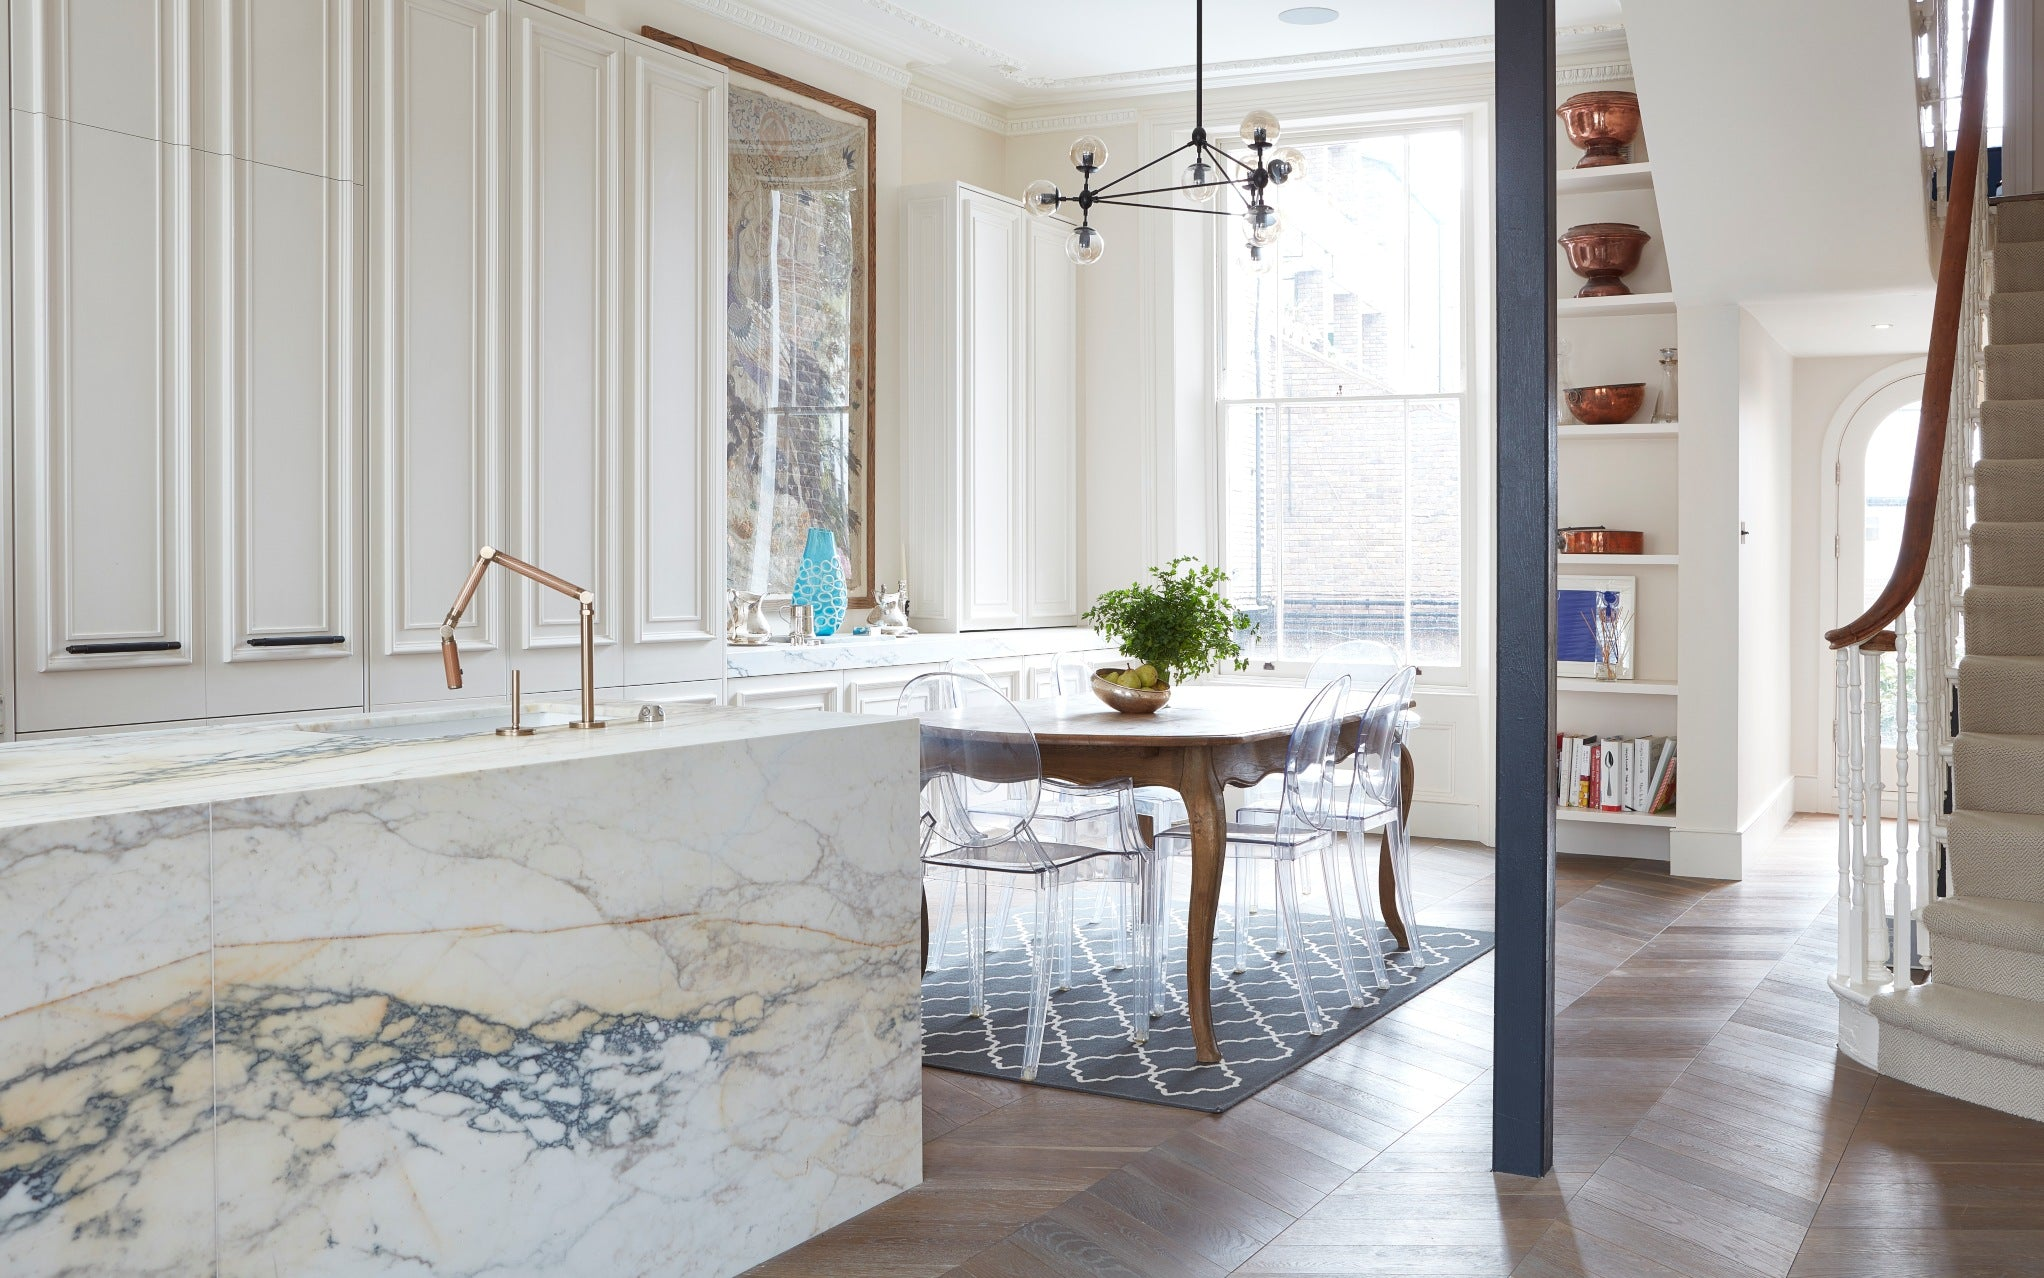 Disappearing Kitchen - The Latest Kitchen Trends in 2019 with Blakes London - LuxDeco.com